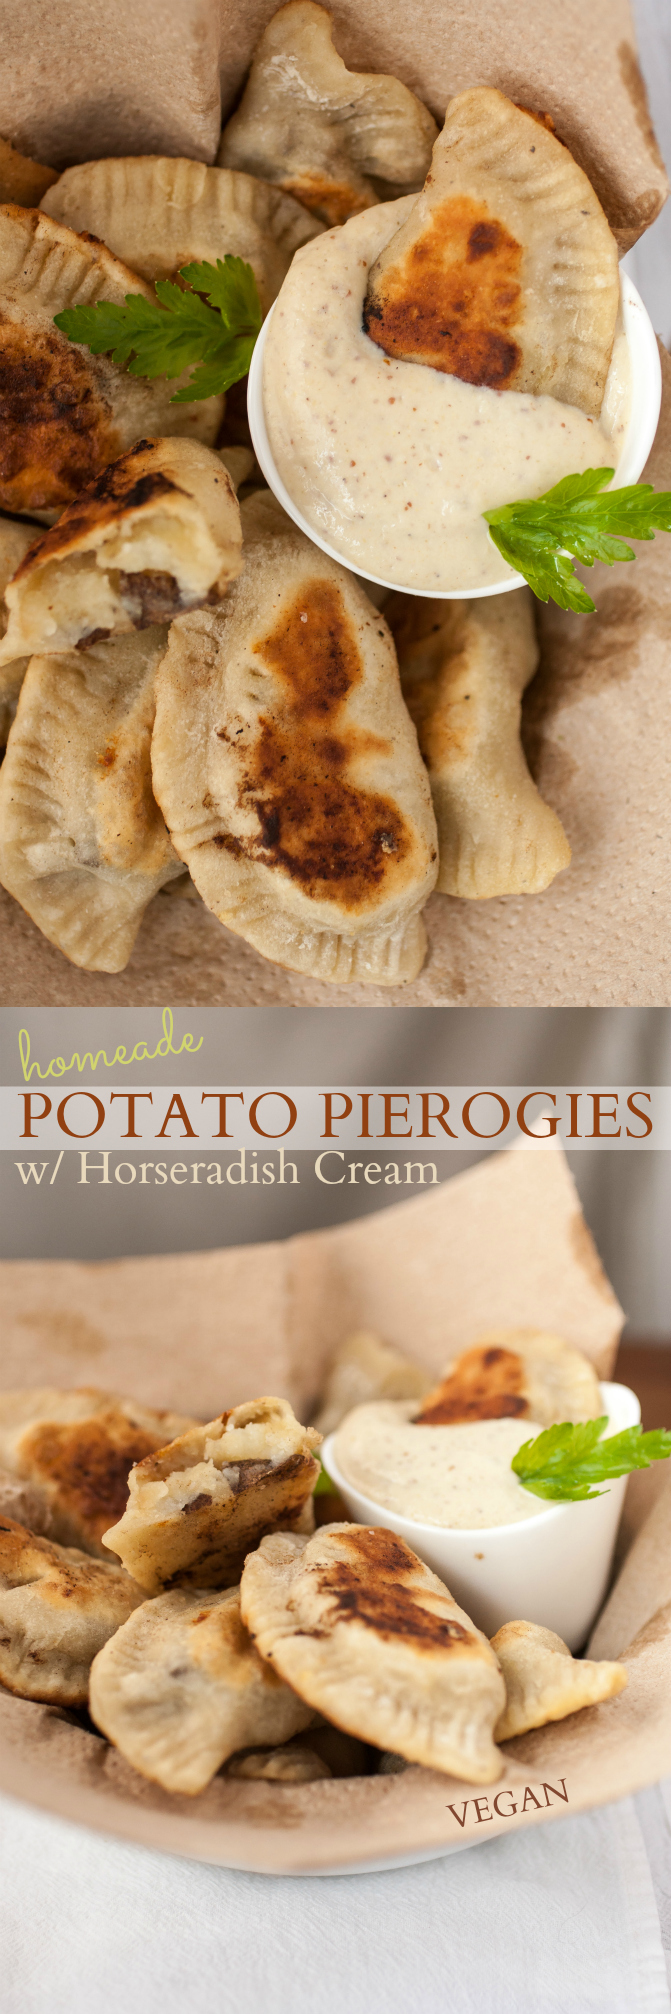 Produce On Parade - Street Vegan Cookbook Review + Homemade Potato Pierogies w/ Horseradish Cream - My new favorite cookbook! These creamy, potato filled pierogies with a delicious homemade dough and horseradish dipping cream are browned to perfection and sure to wow anybody!